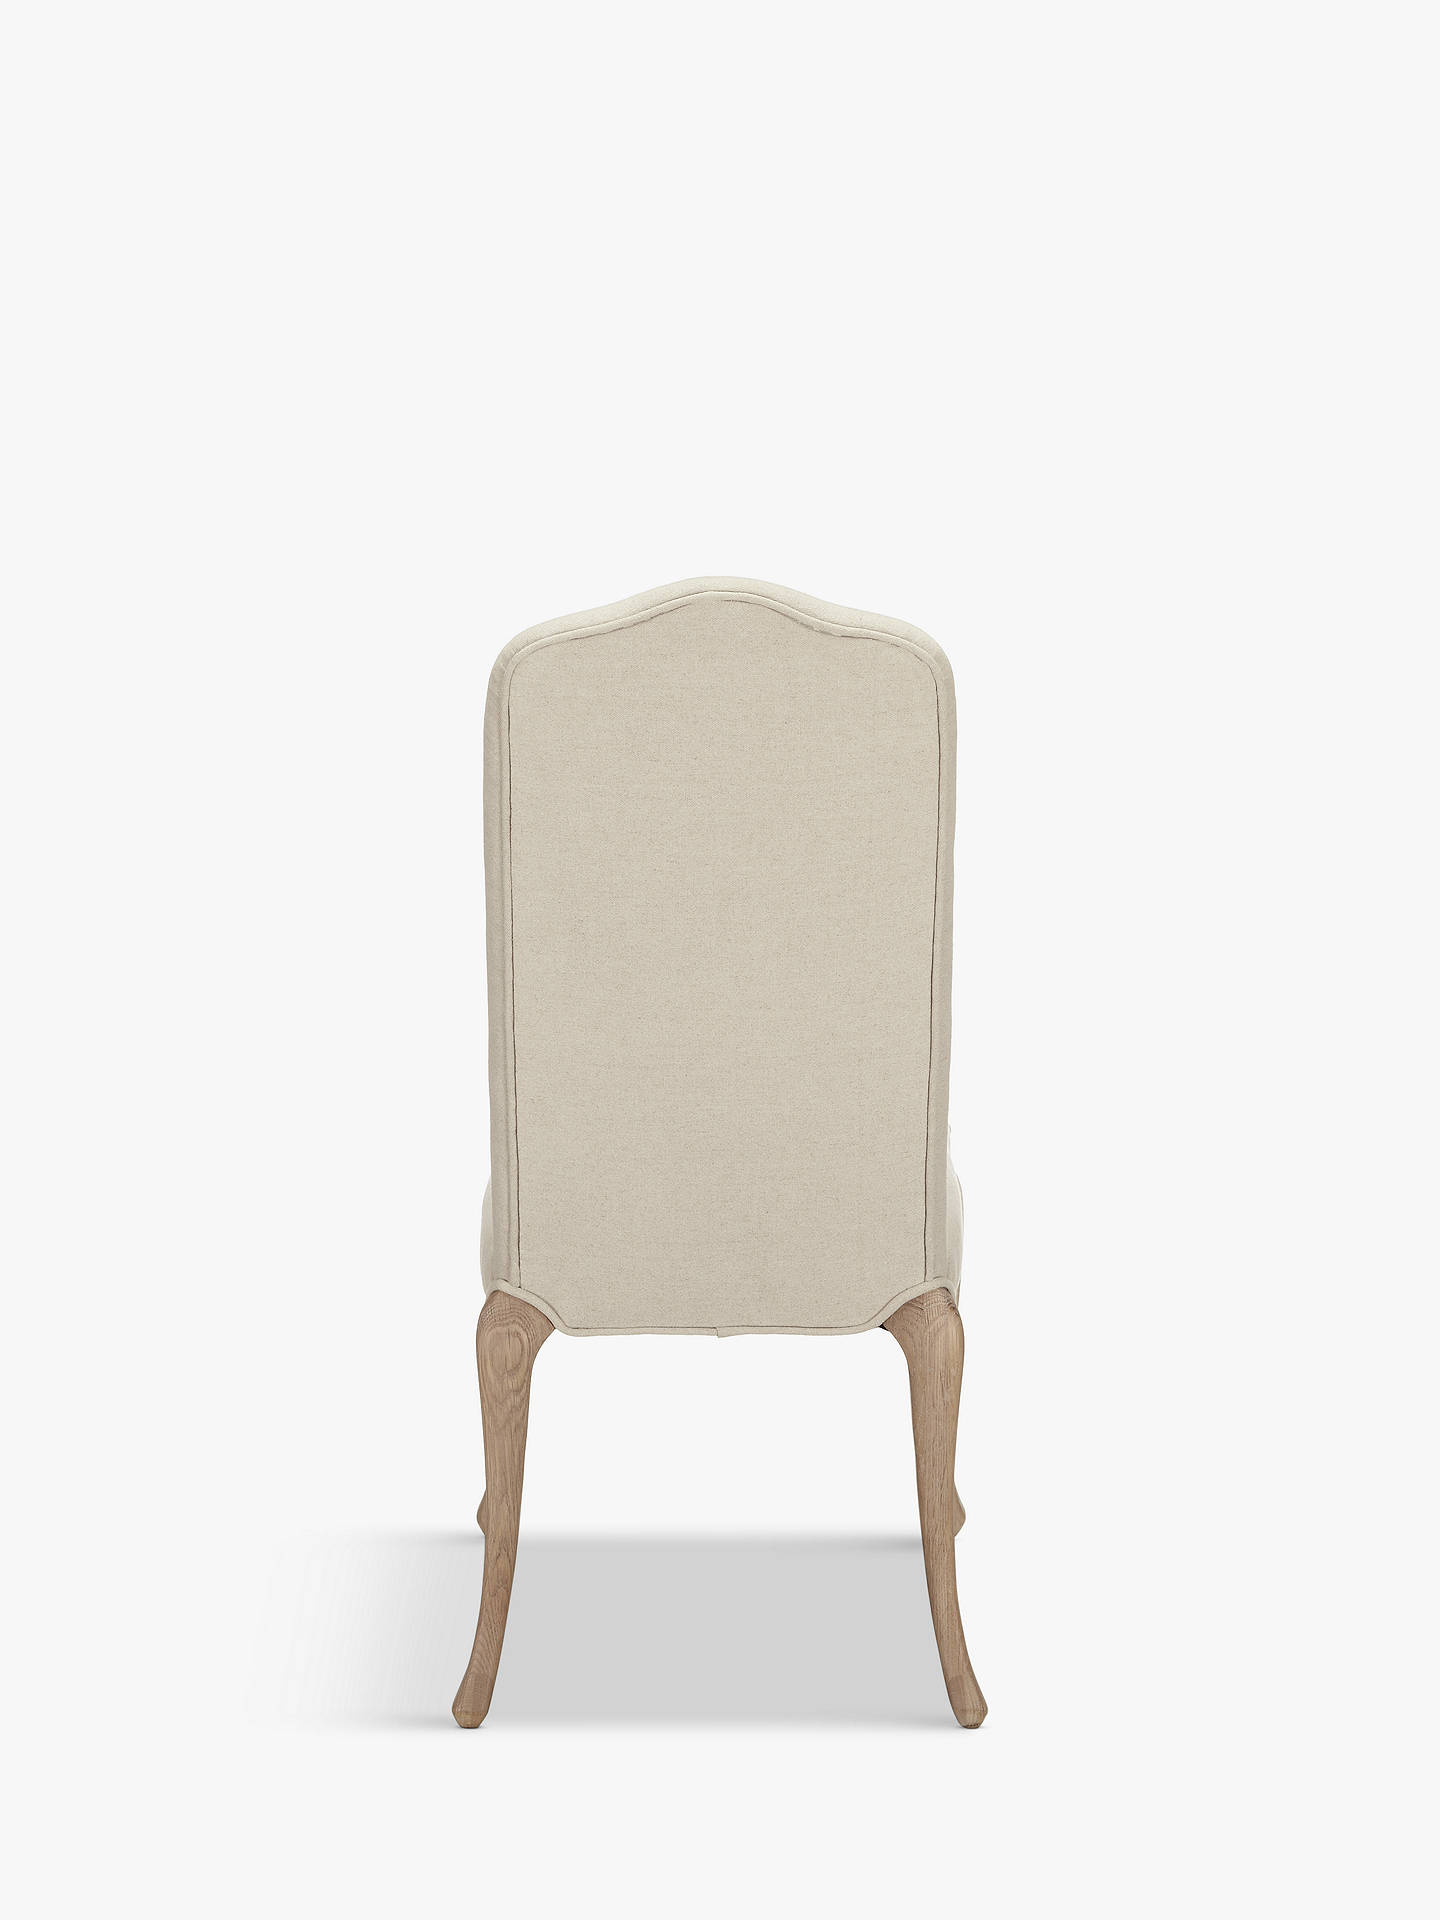 BuyJohn Lewis & Partners Etienne Upholstered Chair Online at johnlewis.com